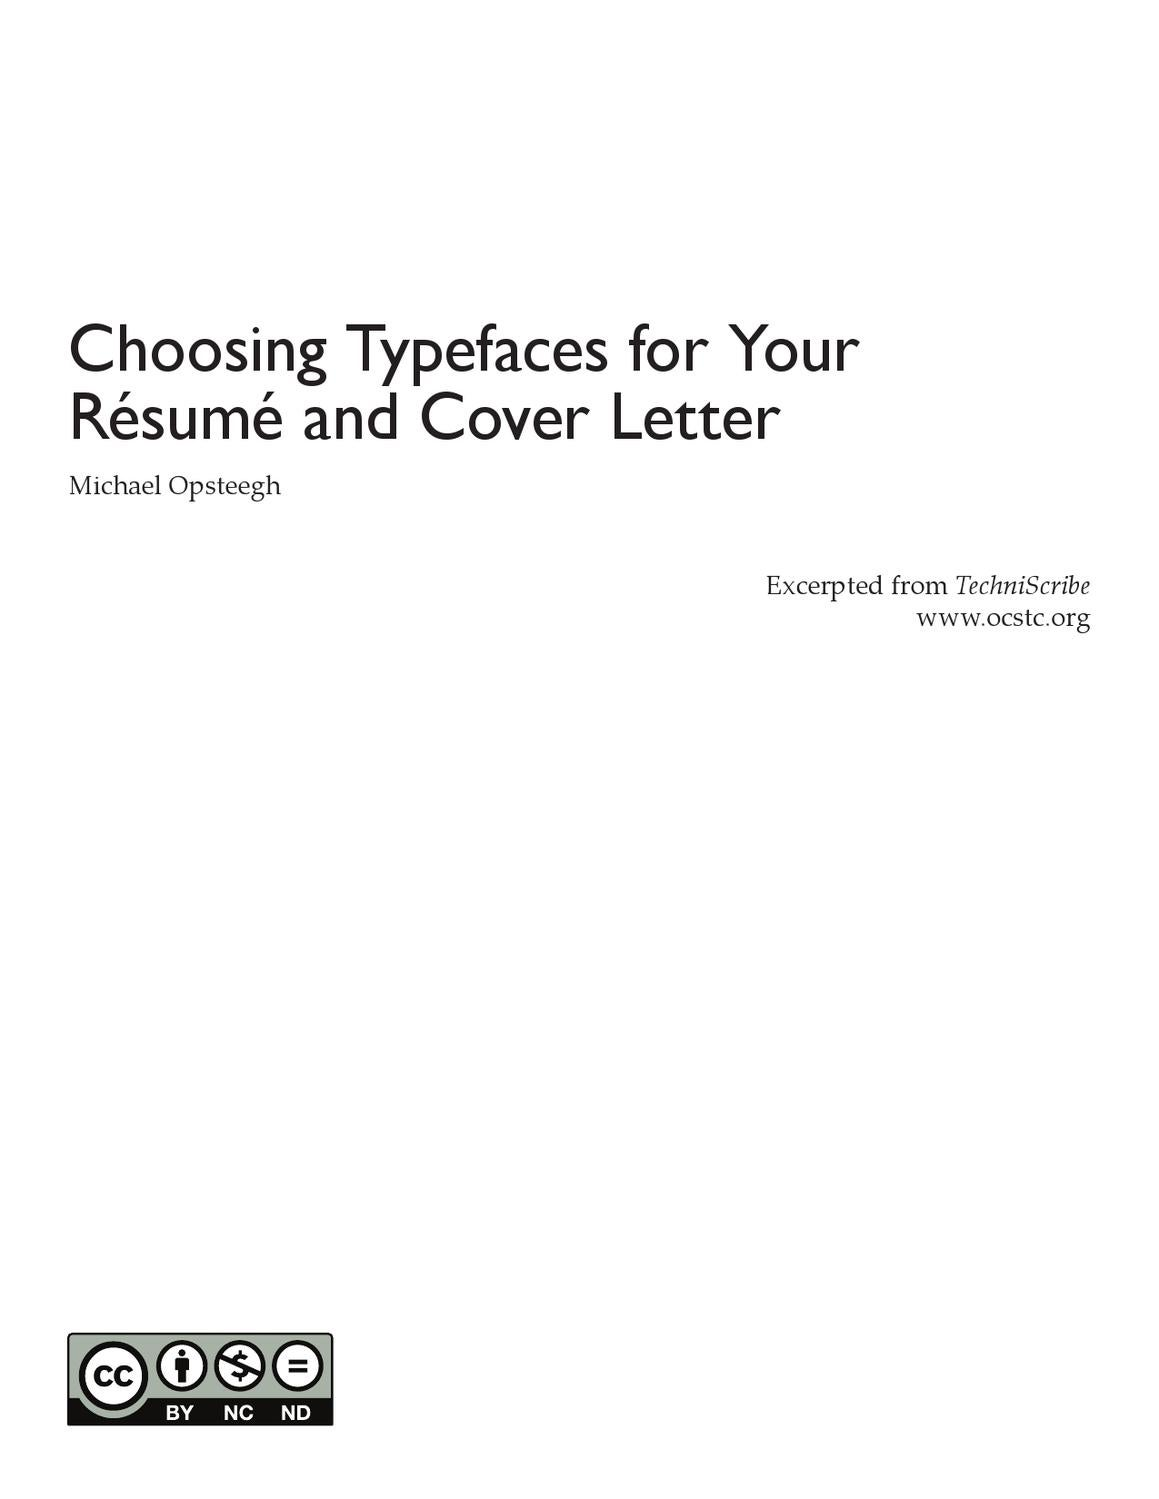 Choosing Typefaces For Your Cover Letter And Resume By Michael